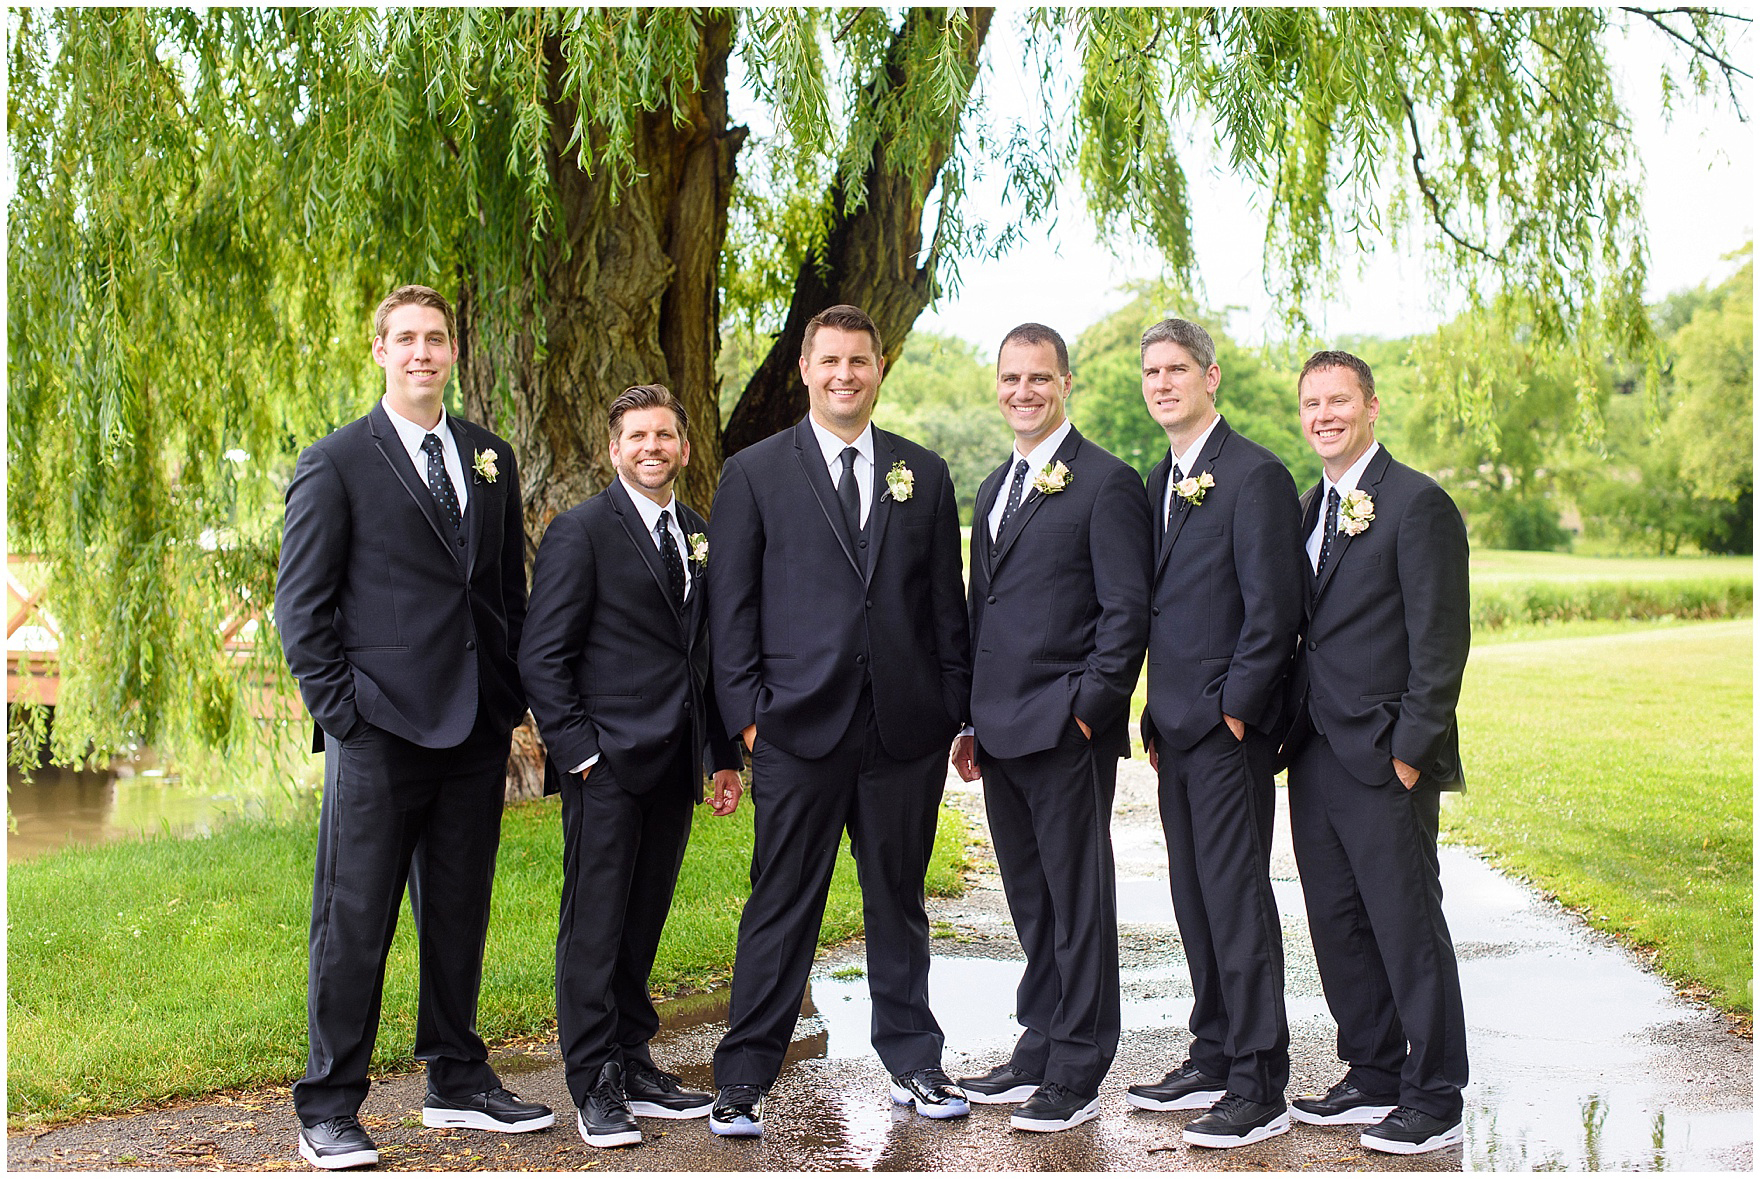 Groomsmen pose during an Itasca Country Club Illinois wedding.